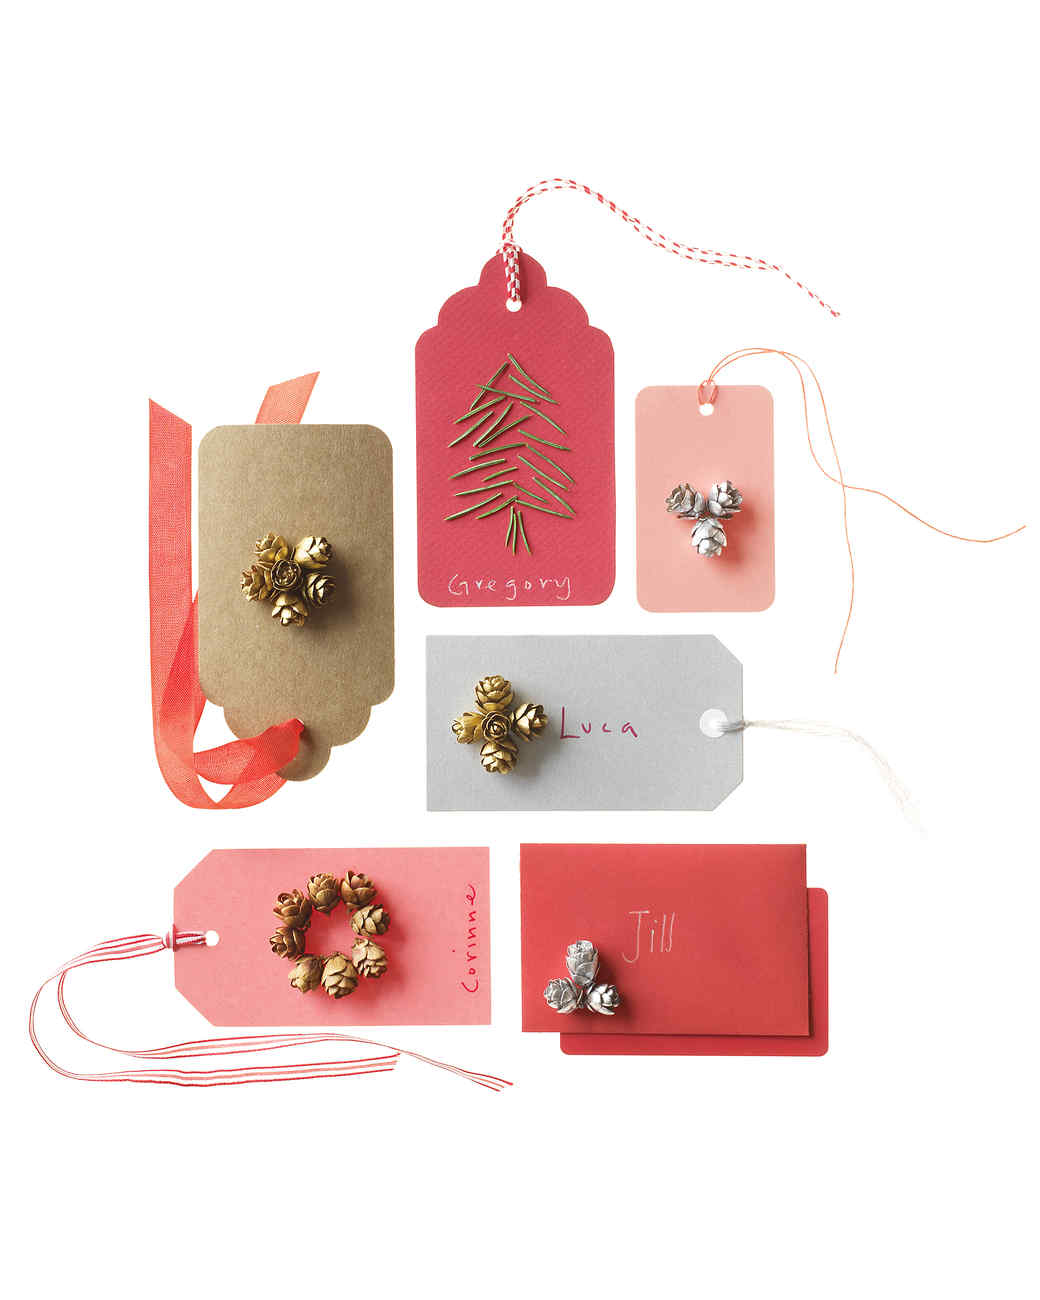 Pinecone embellished gift tags martha stewart pinecone embellished gift tags negle Images